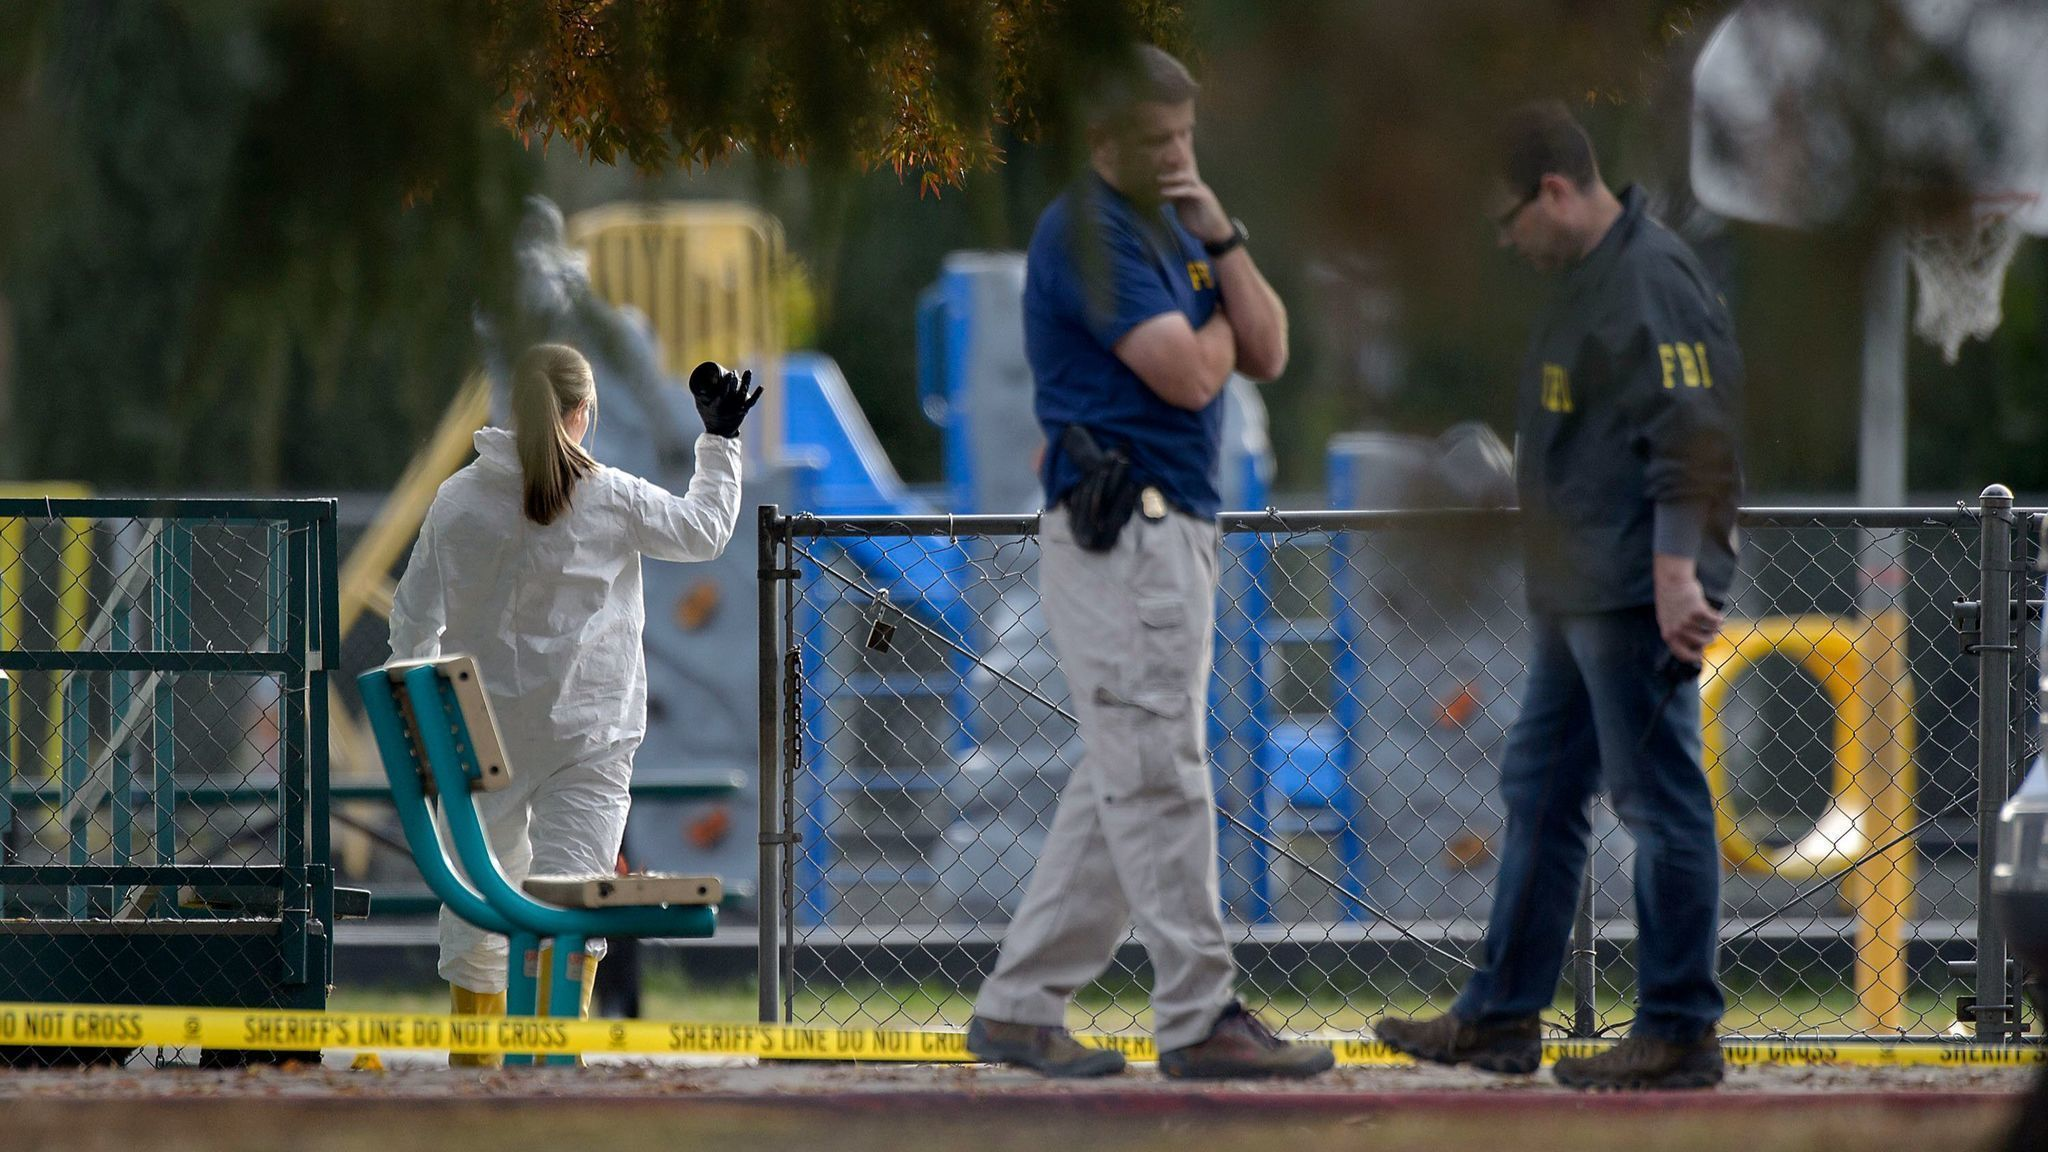 5 dead, including gunman, and 2 children wounded after multiple shootings in Northern California